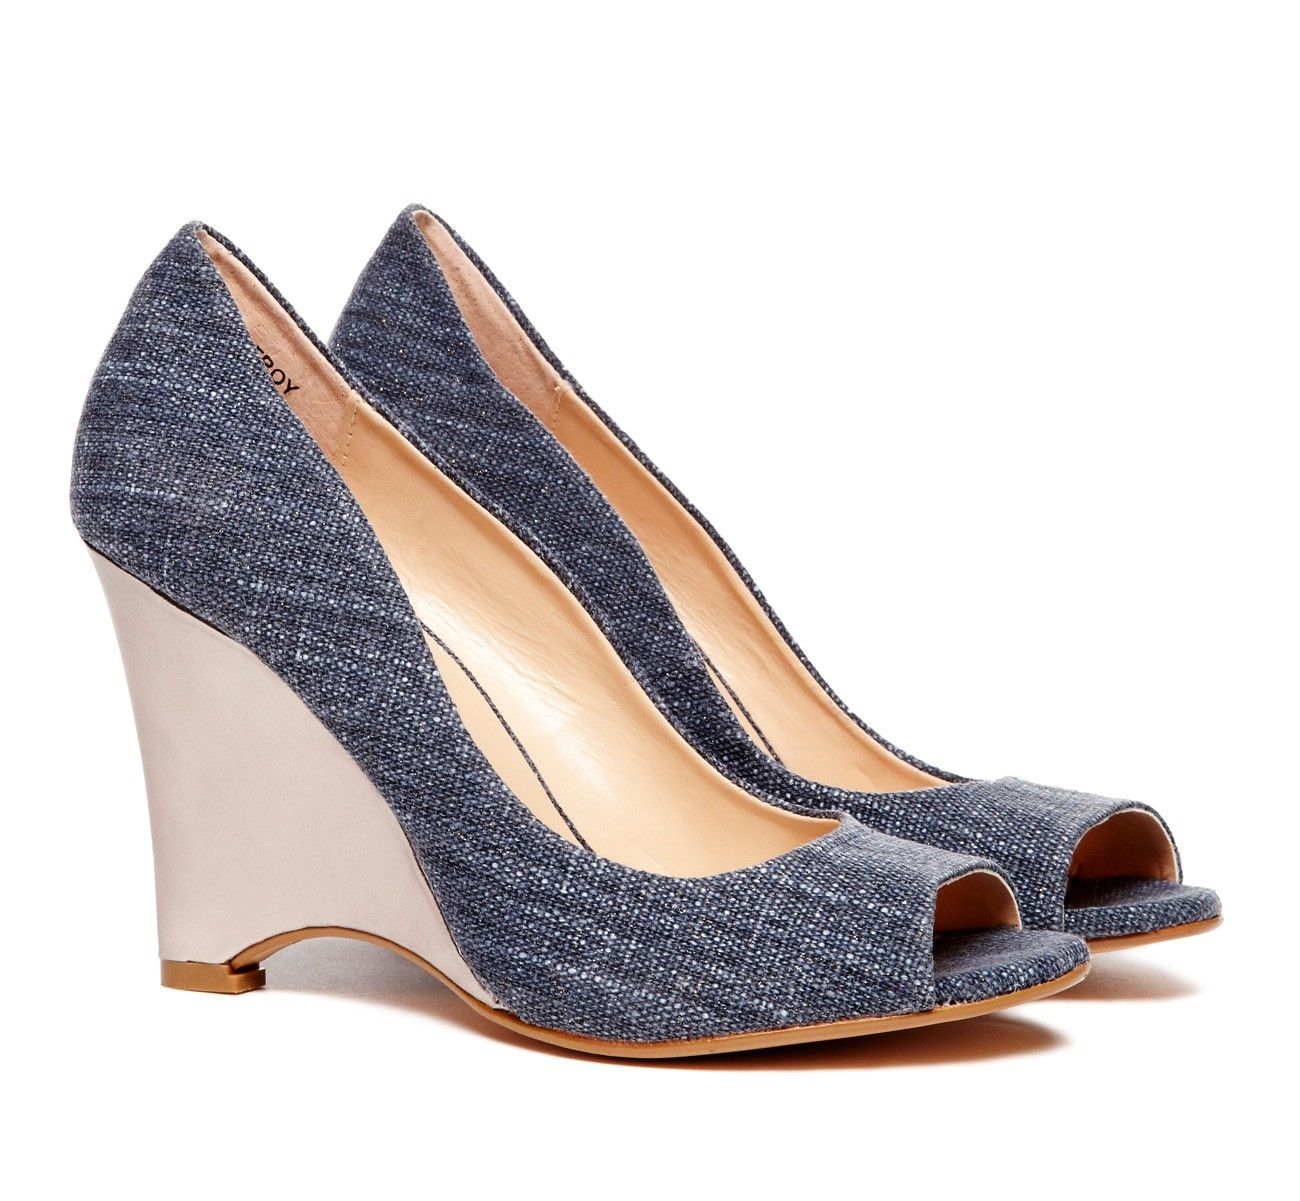 Great wedge for everyday love them